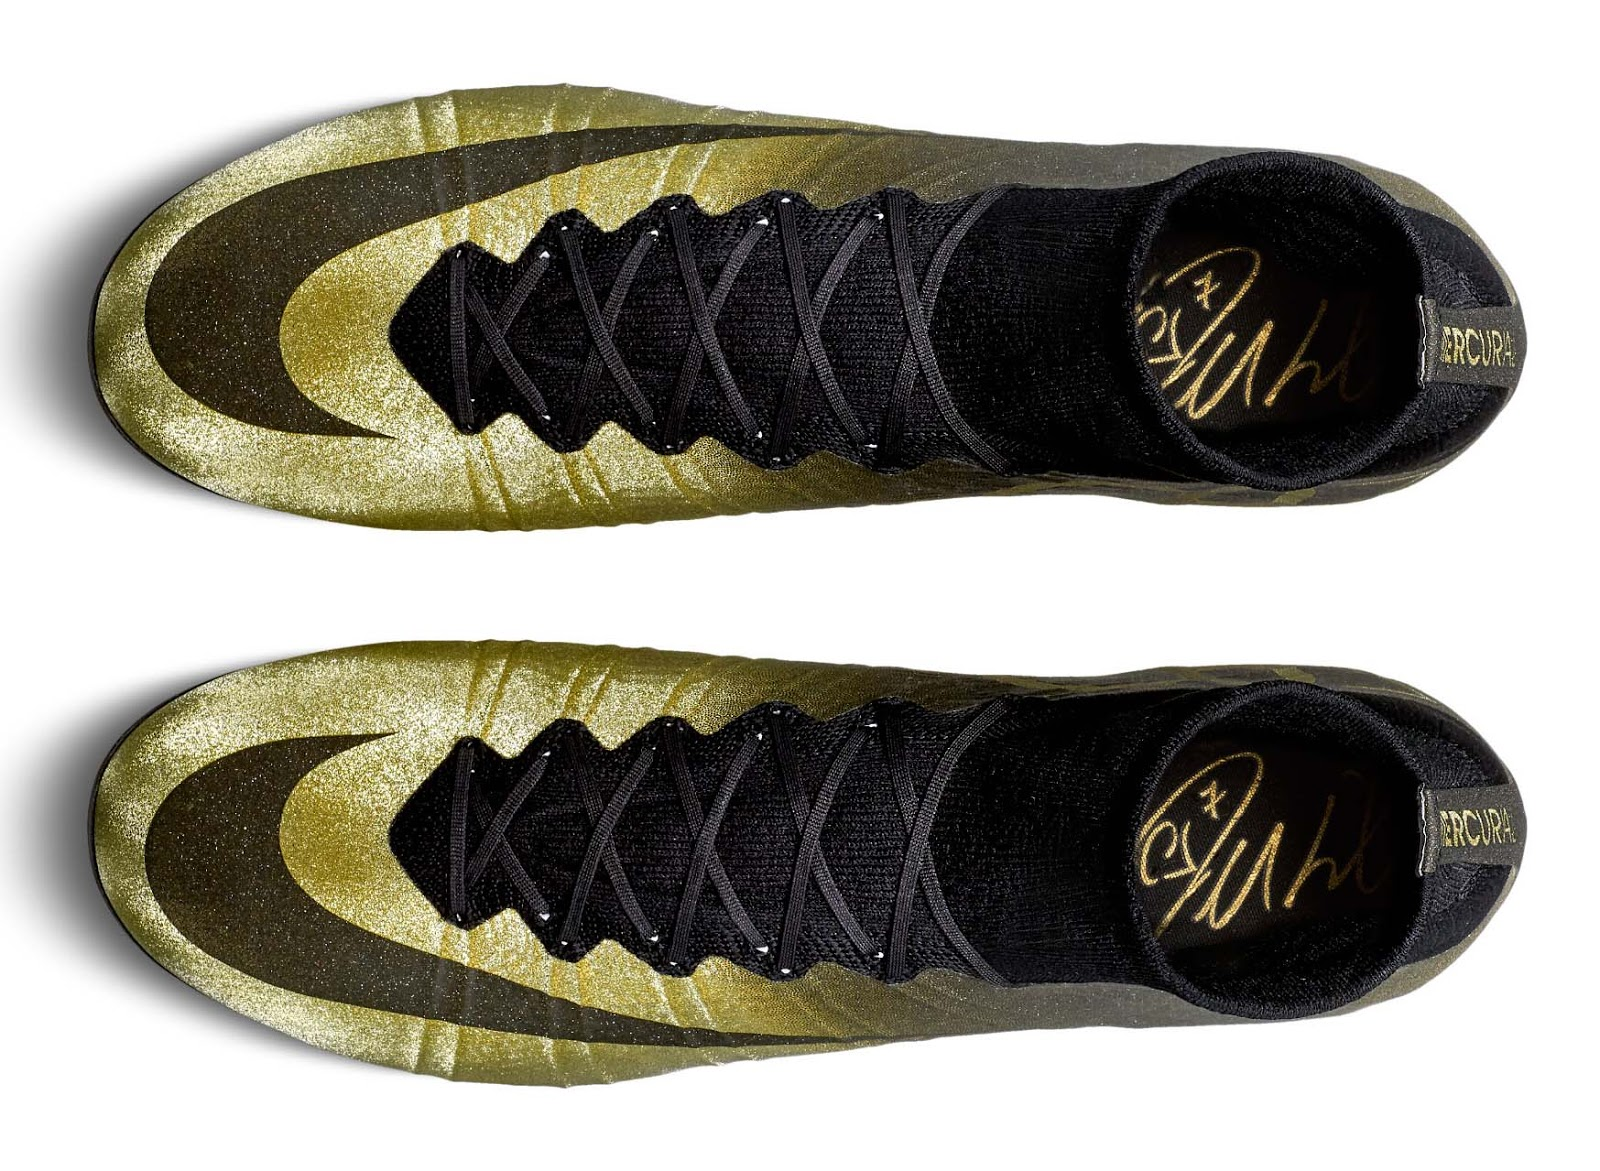 Cleats Feature a Gold Cr7